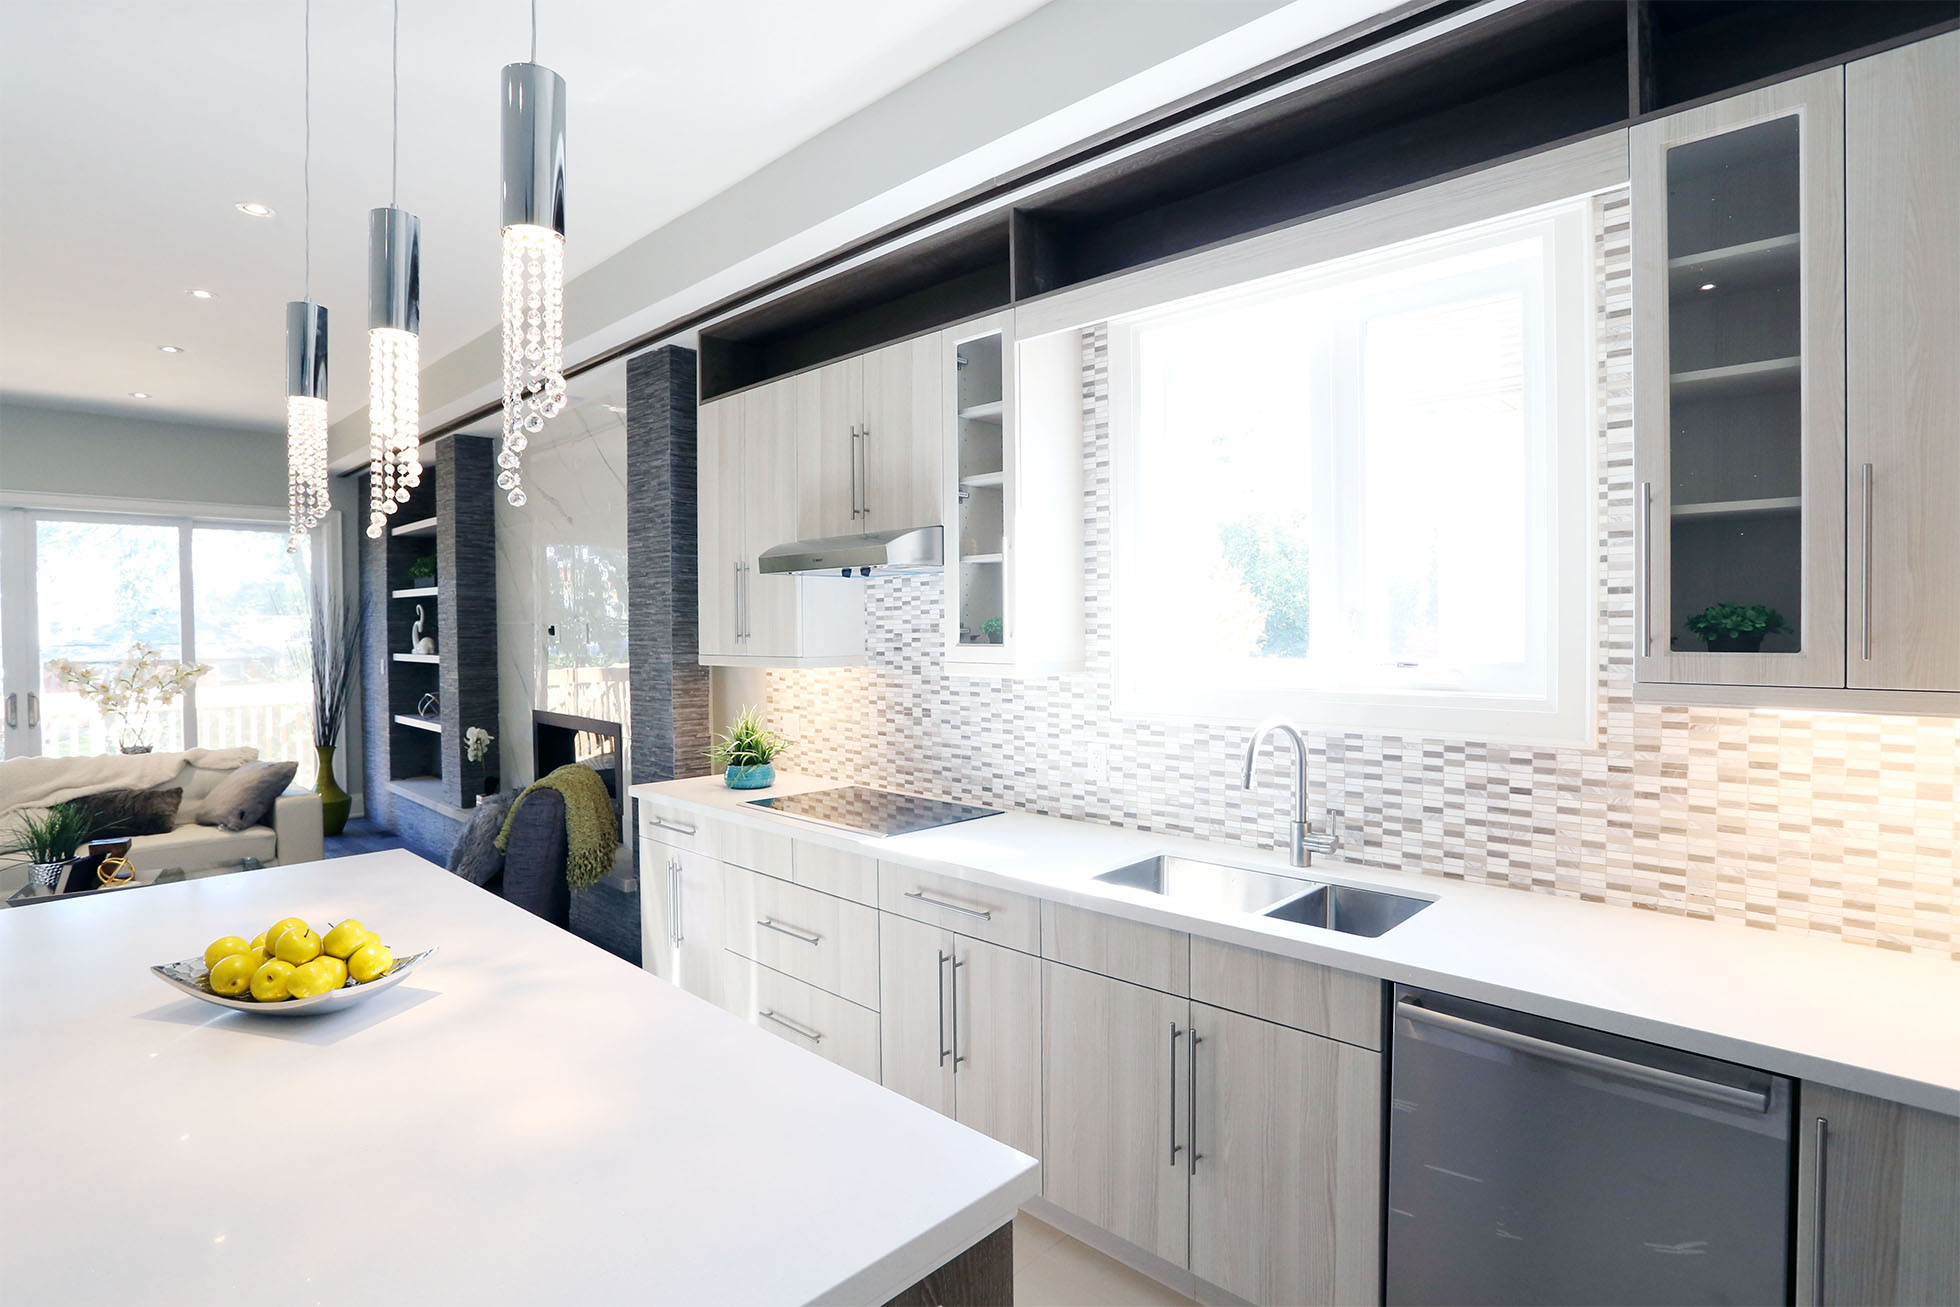 What You Need To Know About A Condo Kitchen Renovation In Canada